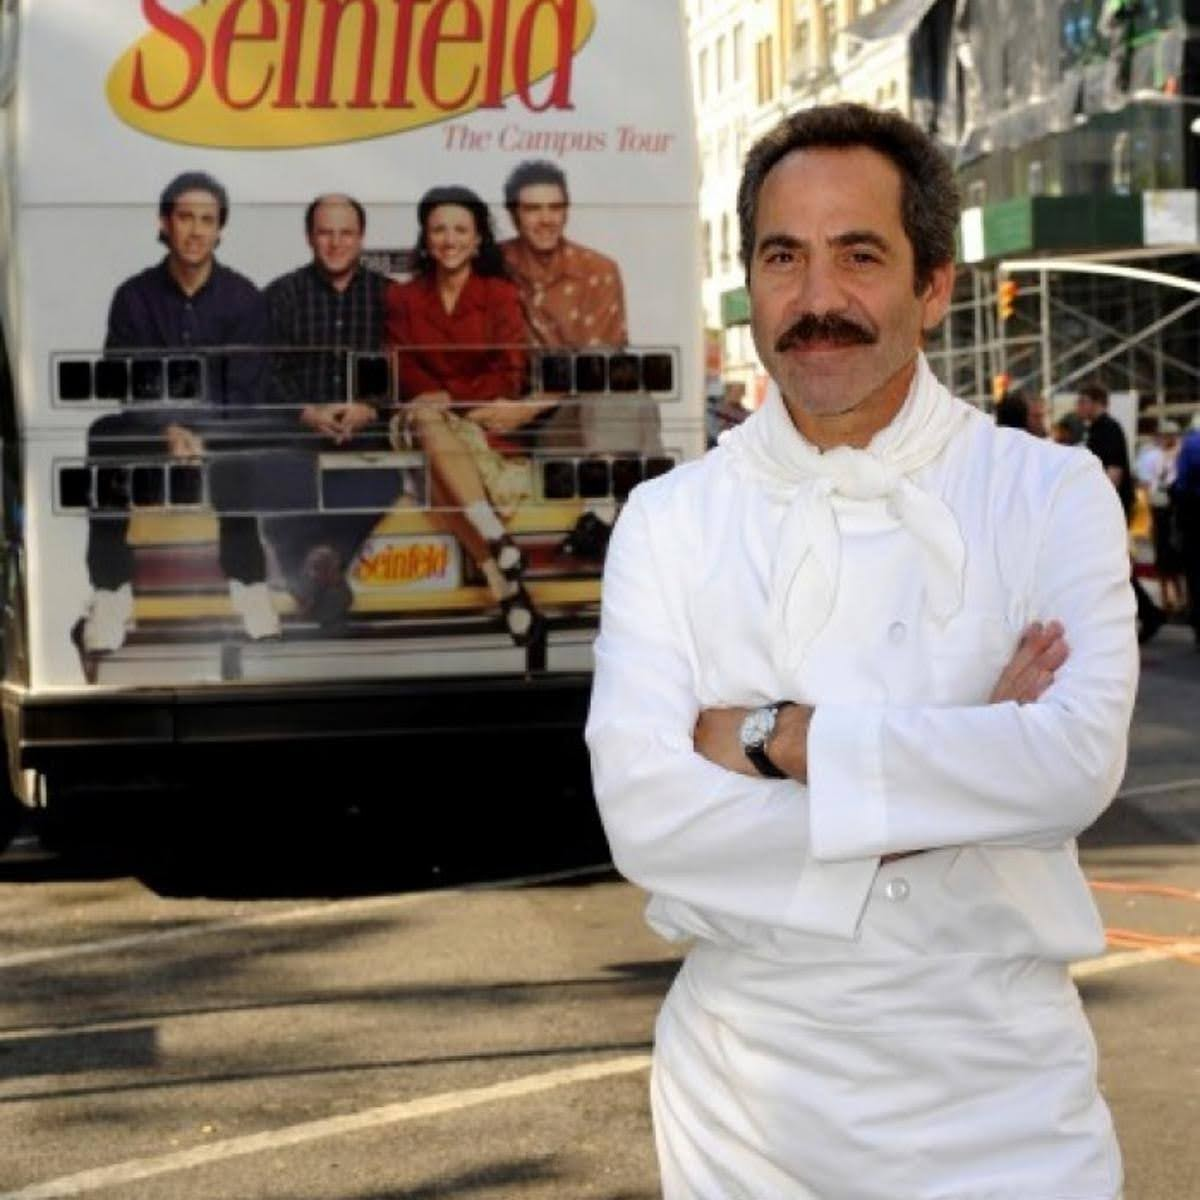 #Montreal police give curfew ticket to soup kitchen regular client https://t.co/yHH7HkByp2 - Seinfeld sitcom Soup Nazi #spvm @spvm #labelleprovincequebec #curfew #opp #rcmp #Canada #cjad #USA #uk #EuropeanUnion #Germany #russia #NorthKorea #china #australia #nz #India #Pakistan https://t.co/tdtzGmUAzX